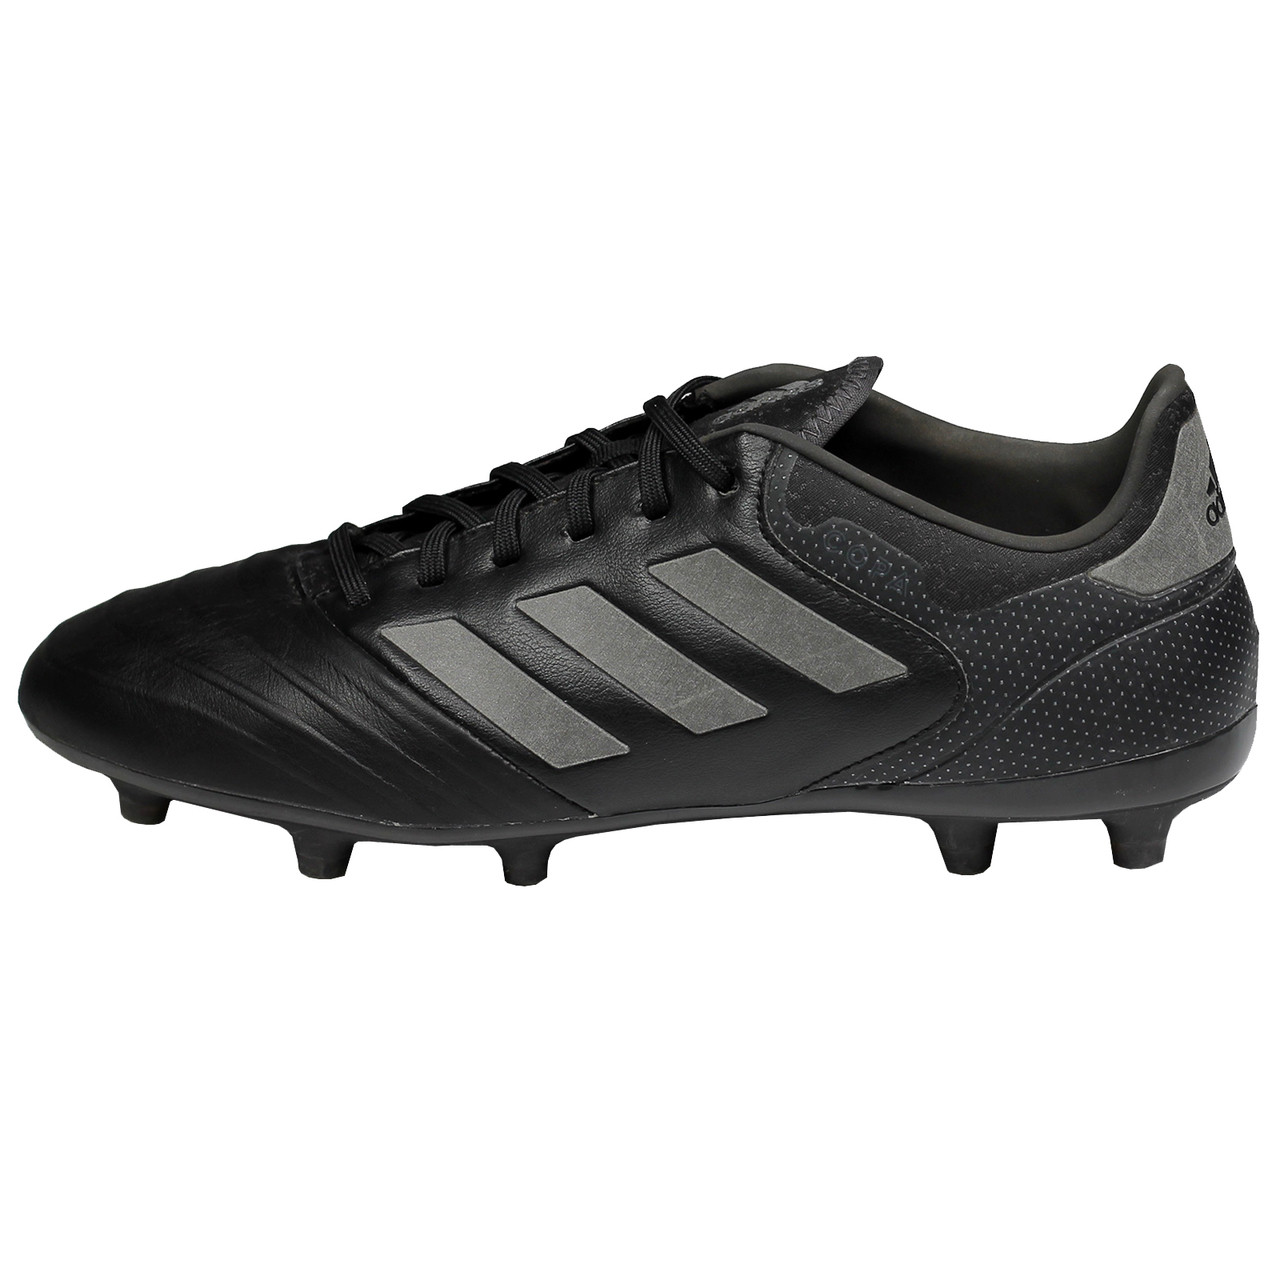 a0f34d12c56 Adidas Copa 18.2 FG Men s Soccer Cleats CP8954 - Black